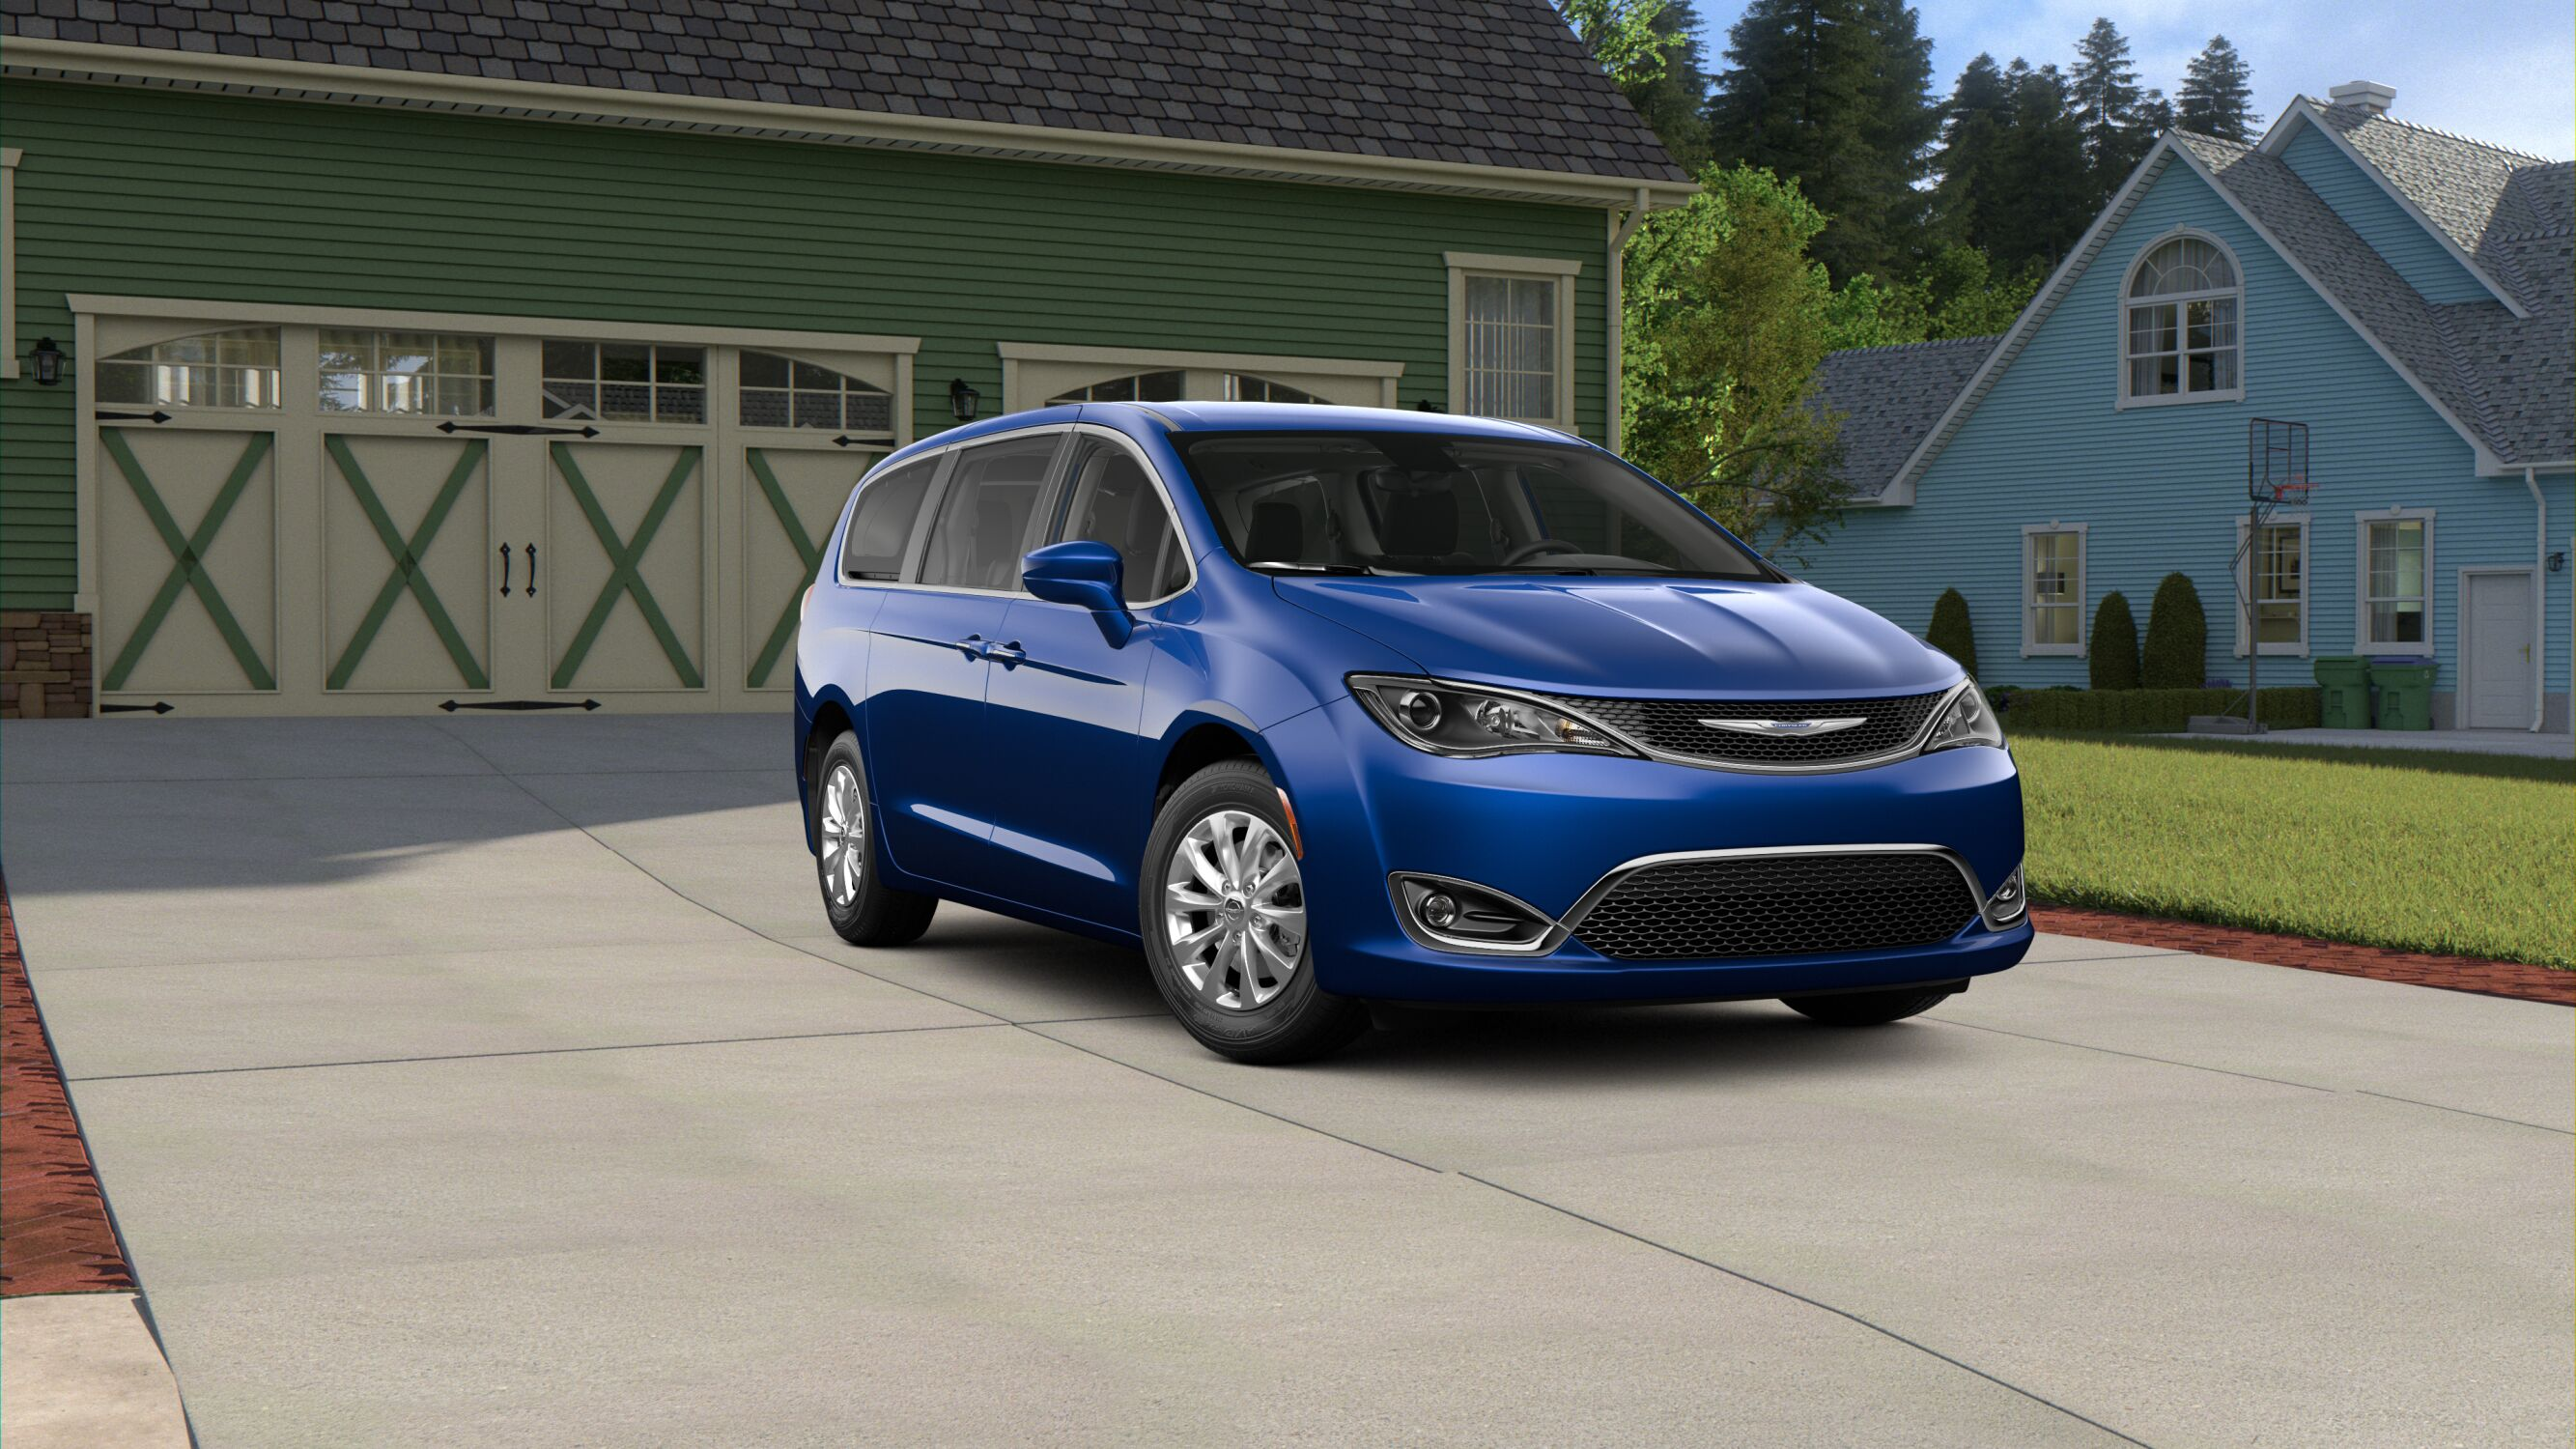 2019 Chrysler Pacifica Touring Plus Ocean Blue Exterior Front Picture